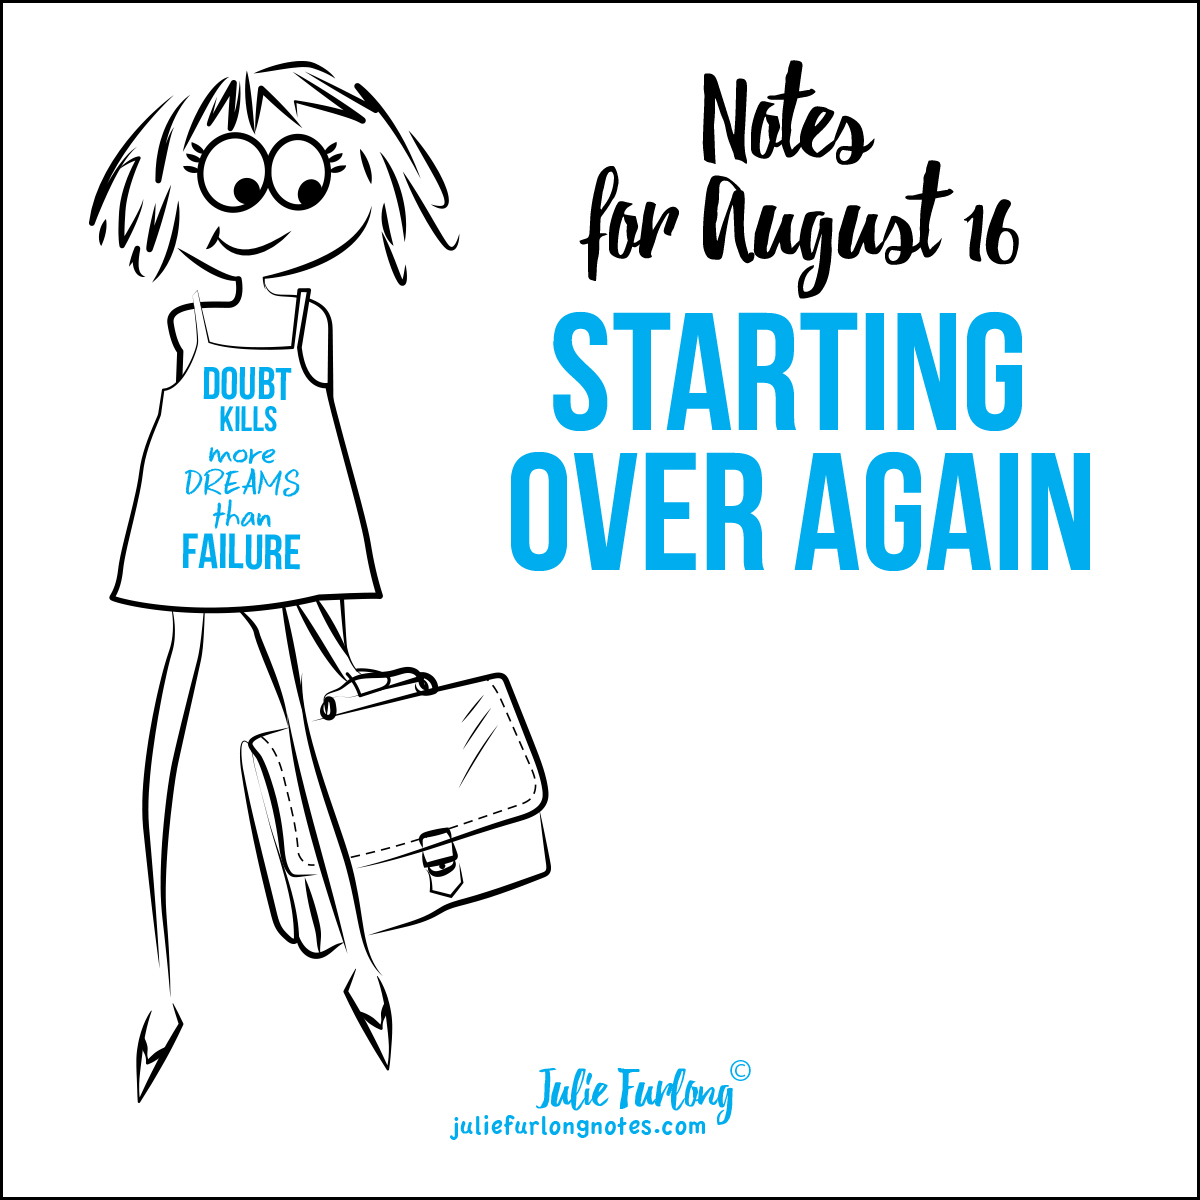 Julie-Furlong-Notes-Starting-Over-Again